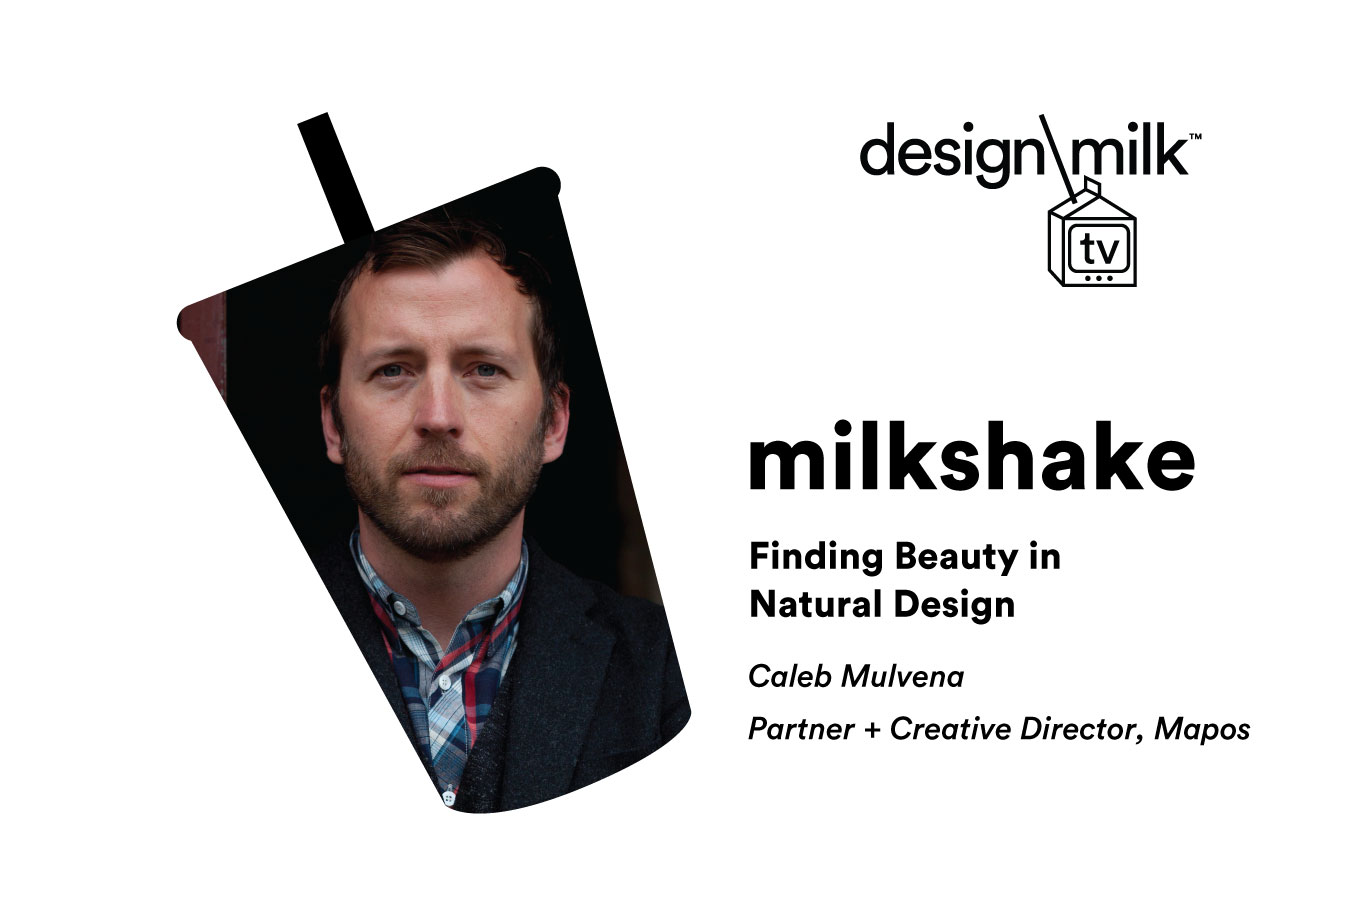 DMTV Milkshake: Finding Beauty in Natural Design